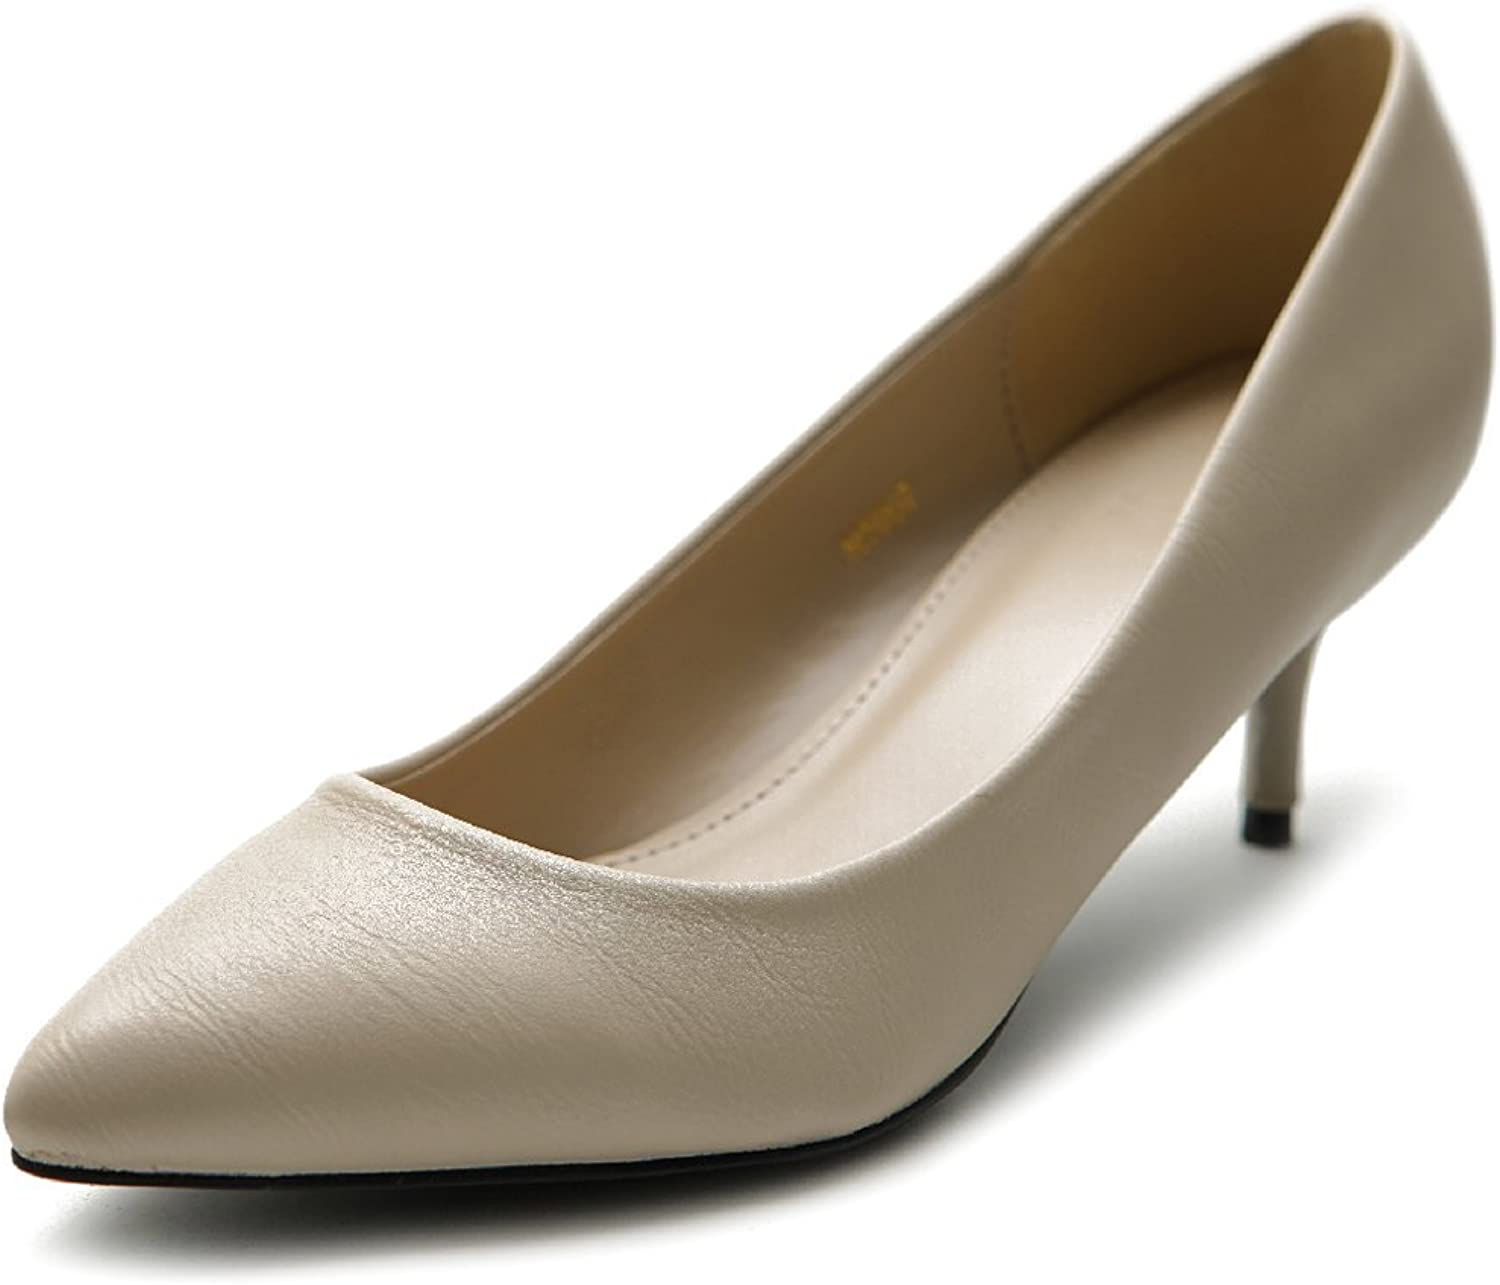 Ollio Women's shoes D'Orsay Pointed Toe Simple Mid Heel Pump